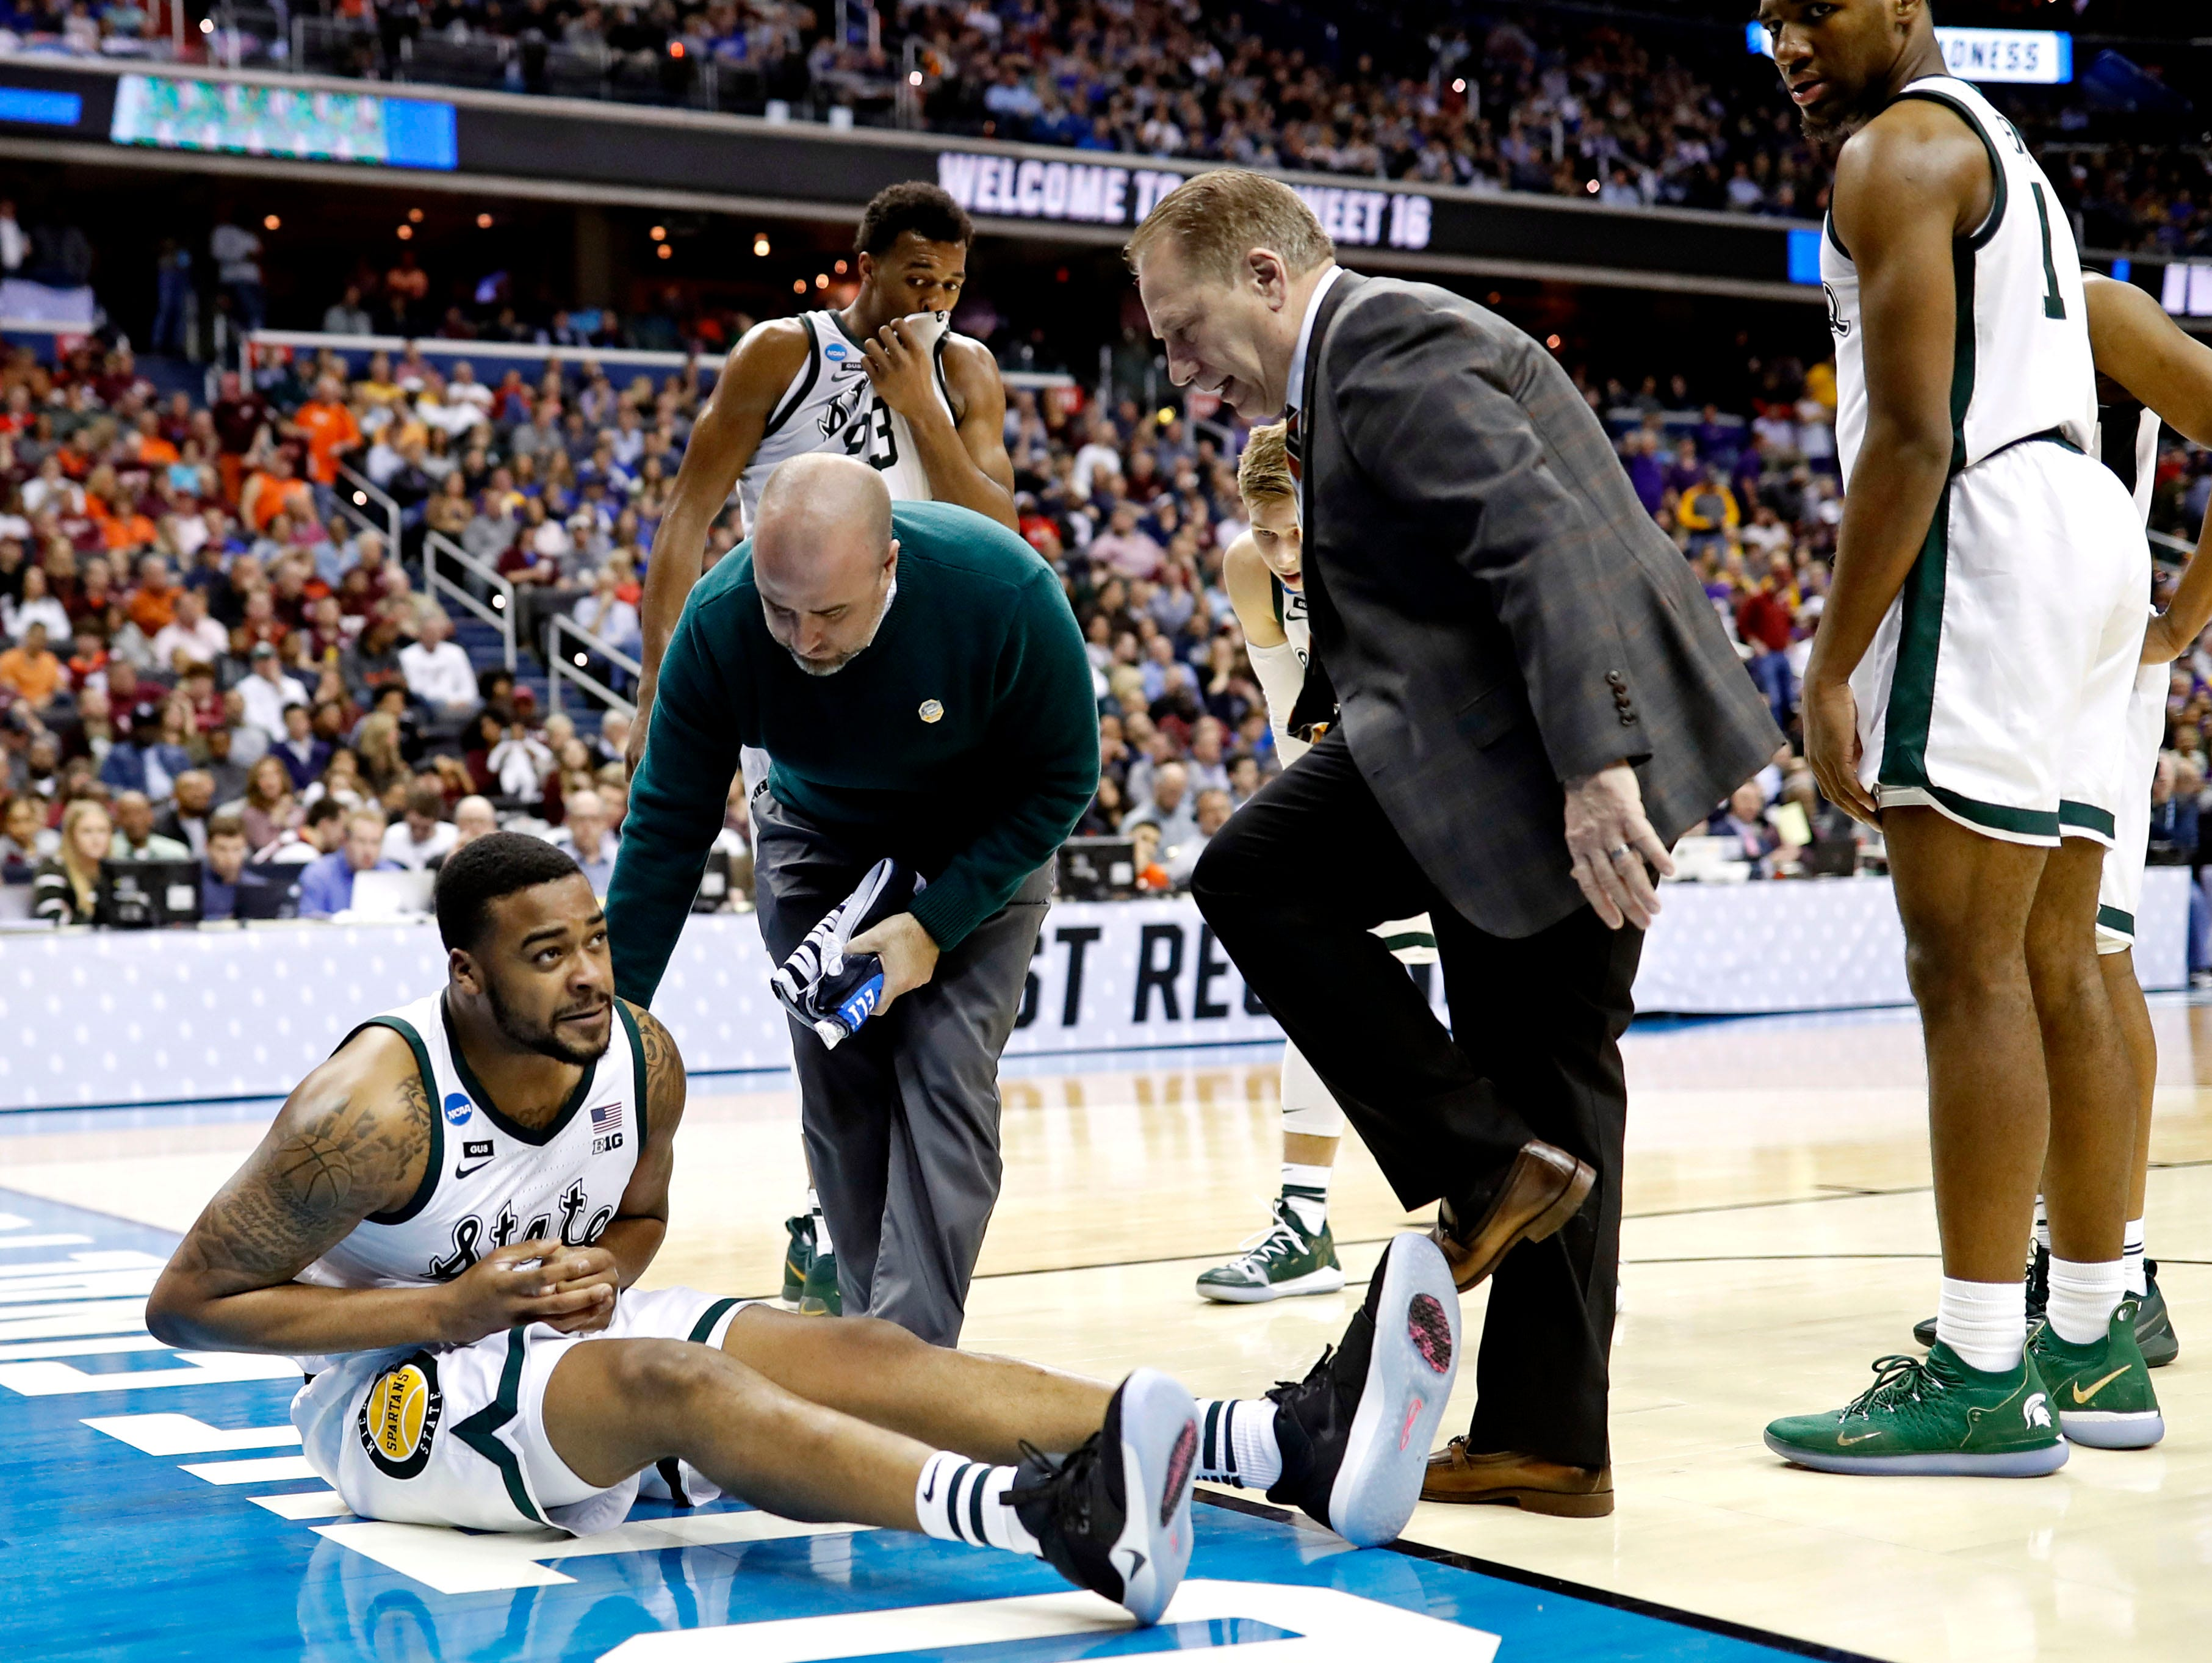 Michigan State Spartans forward Nick Ward (44) reacts after an injury during the second half against the LSU Tigers in the semifinals of the east regional of the 2019 NCAA Tournament at Capital One Arena.